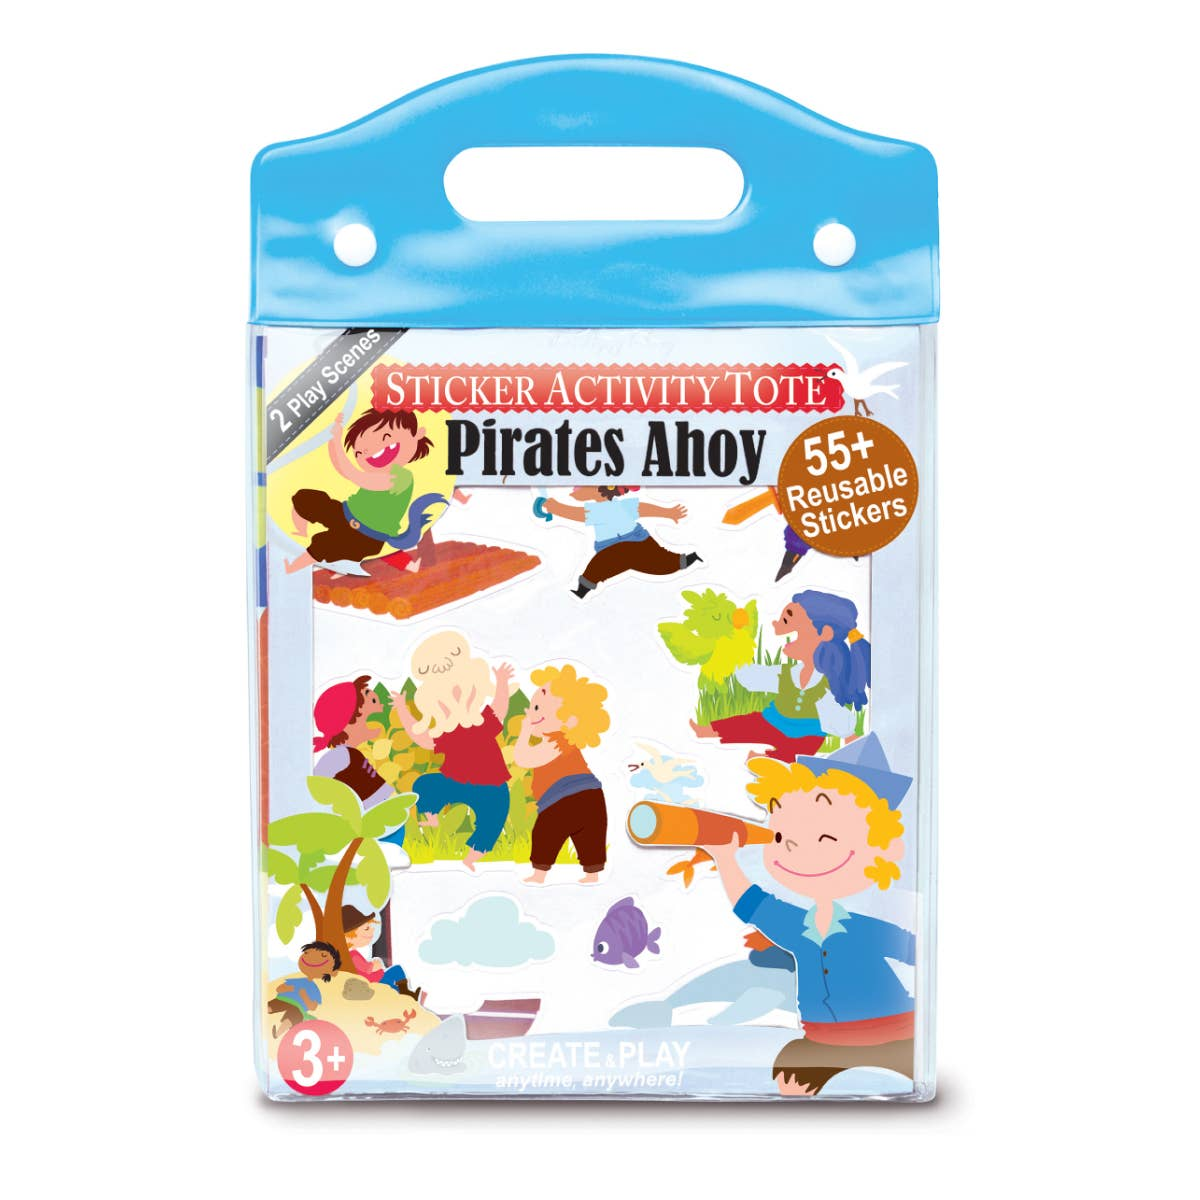 Pirates Ahoy Sticker Activity Tote